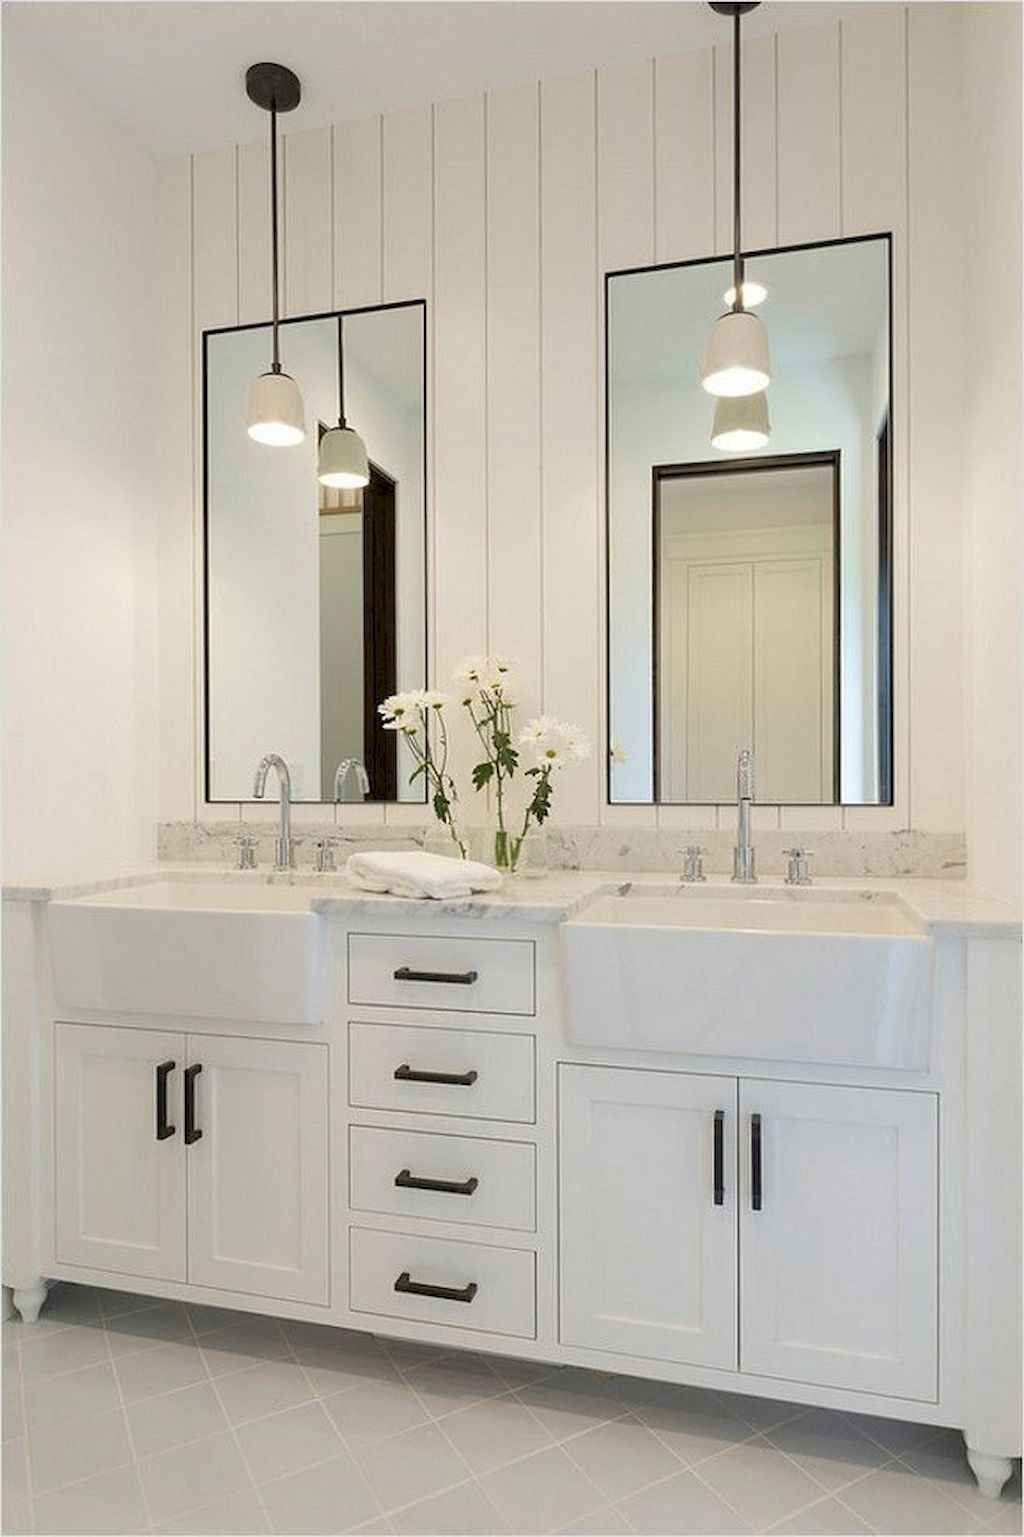 Fascinating Farmhouse Master Bathroom Remodel Ideas To Have Now25